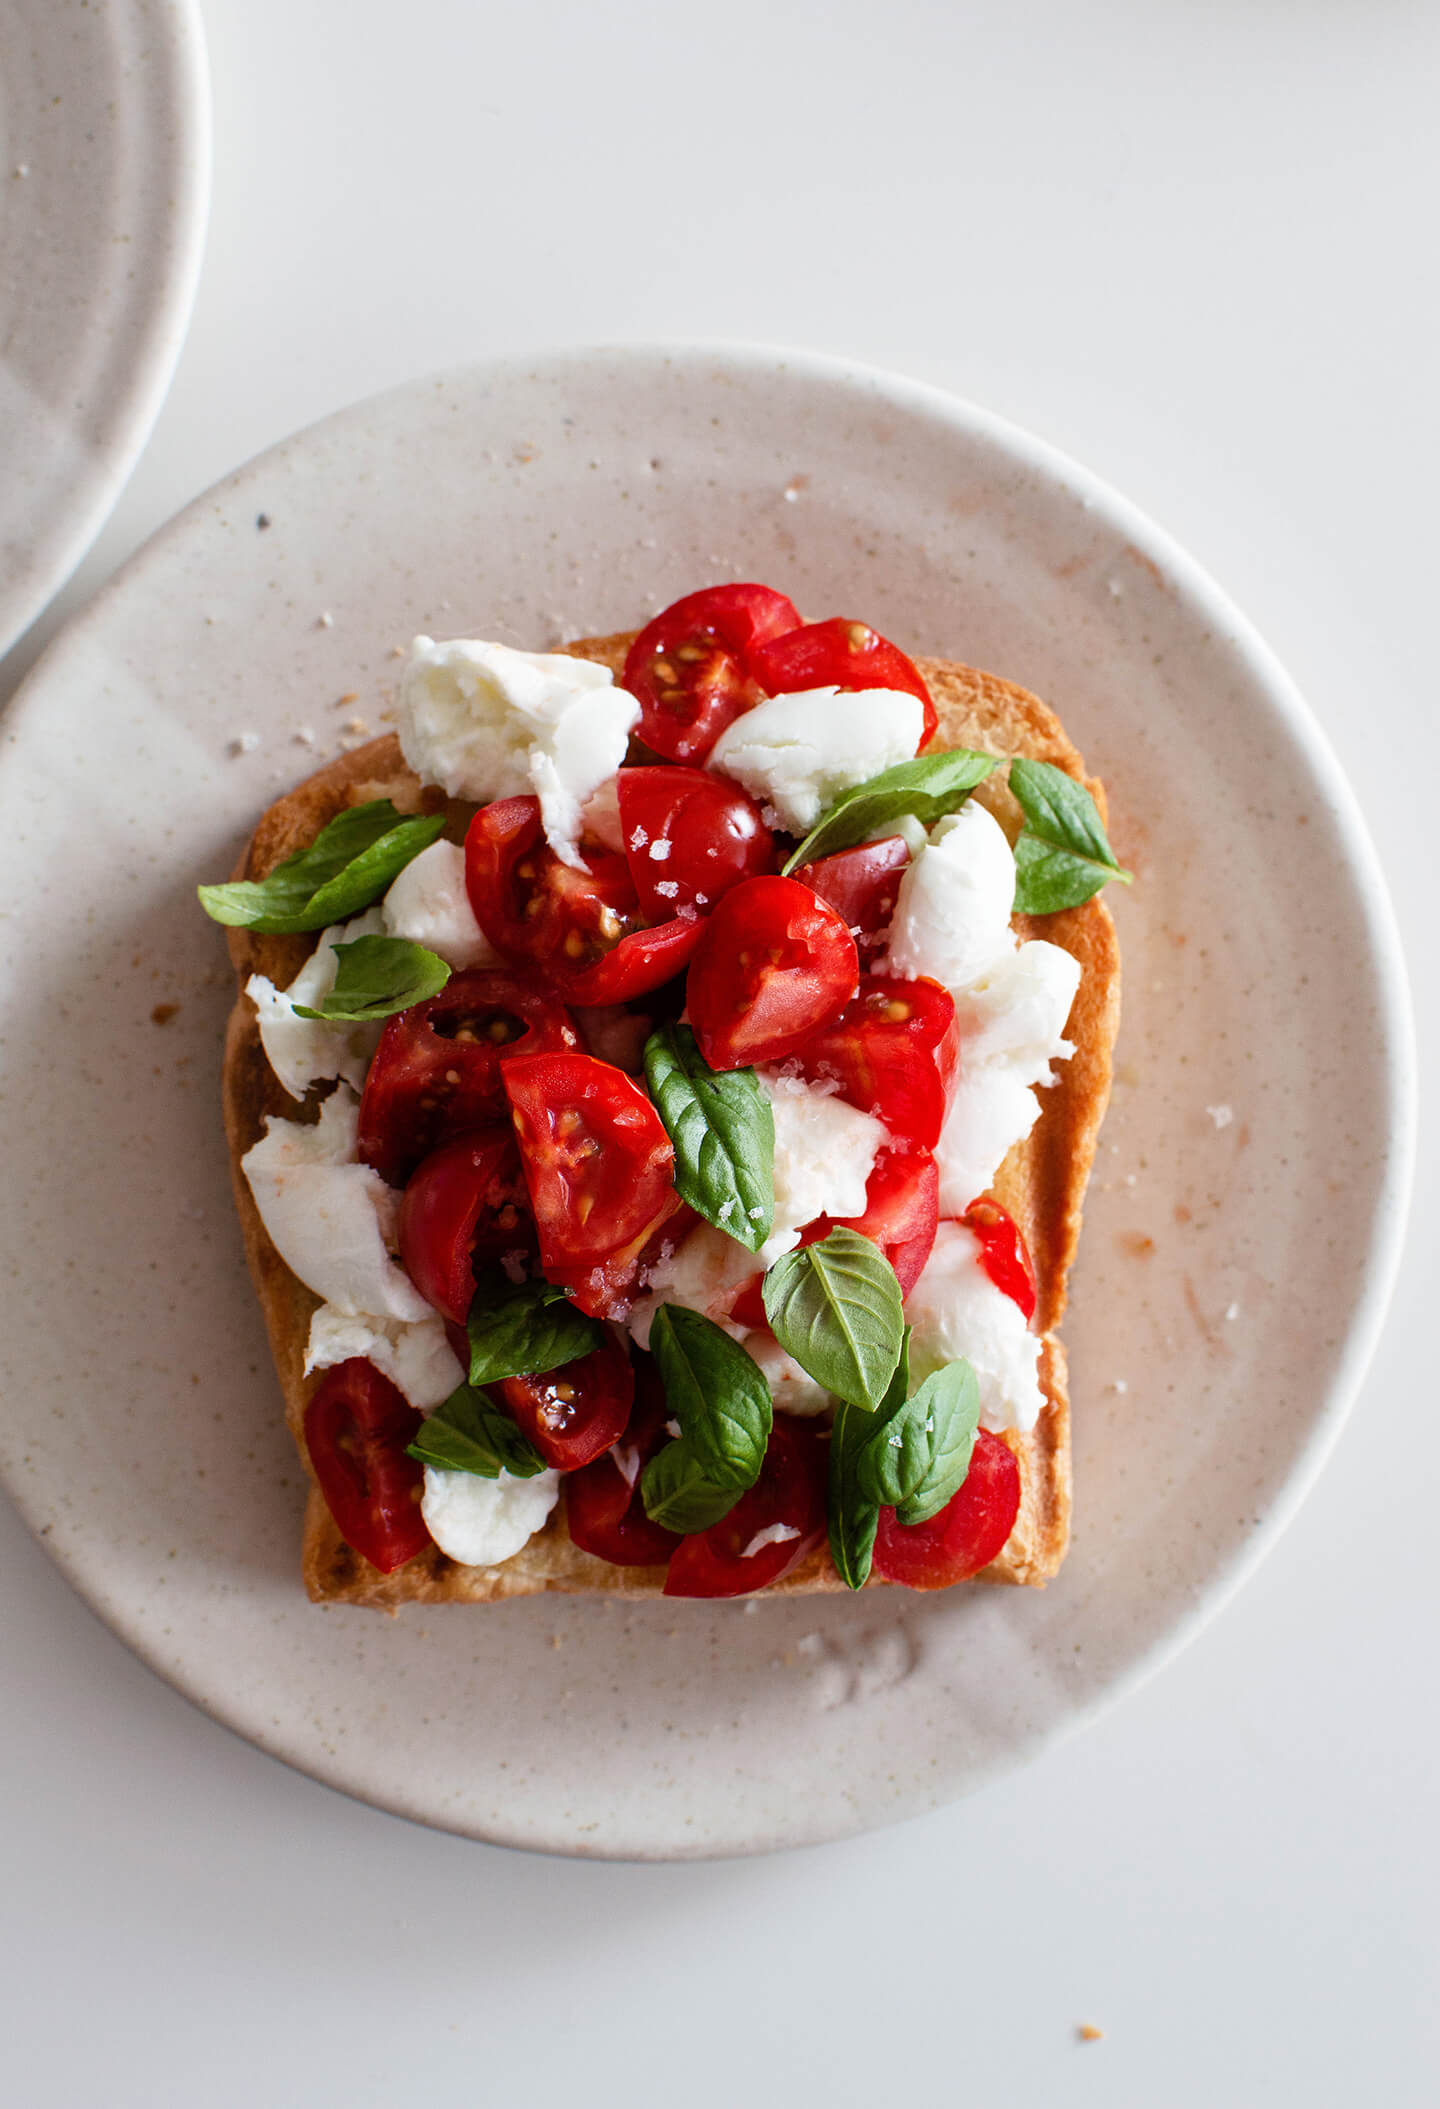 bruschetta-style tomato mozzarella toast makes the perfect breakfast or lunch! Made with fresh, sweet tomatoes and milky mozzarella, it is simple yet extremely satisfying!